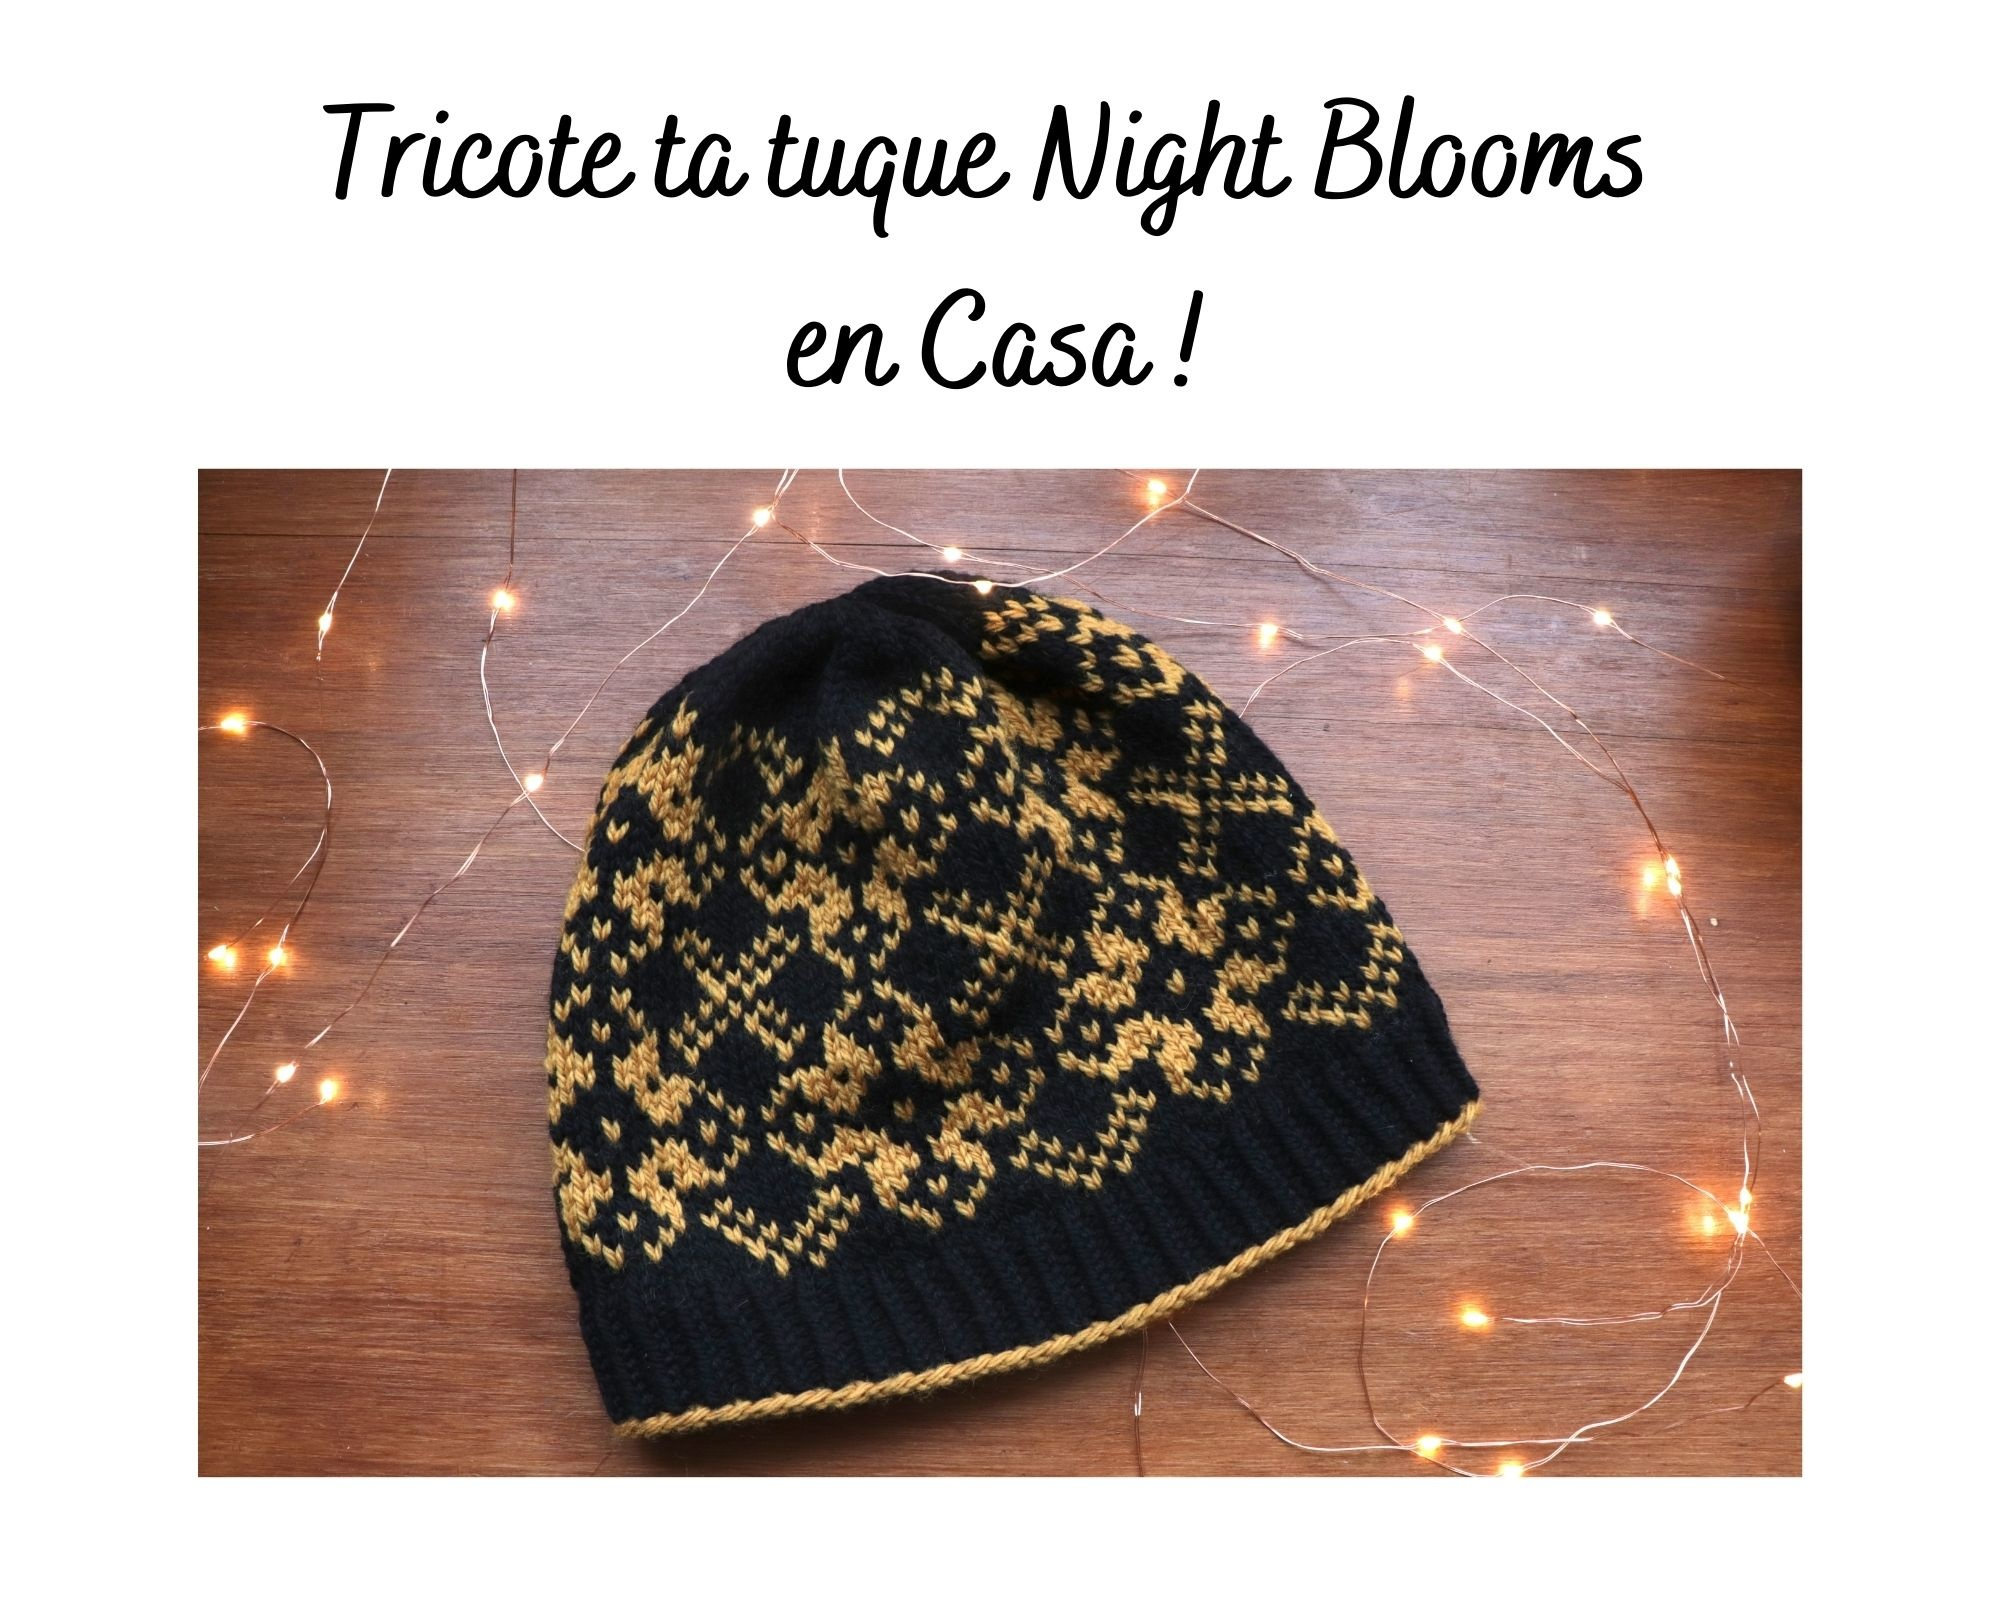 Tricote Ta tuque Night Blooms en Casa